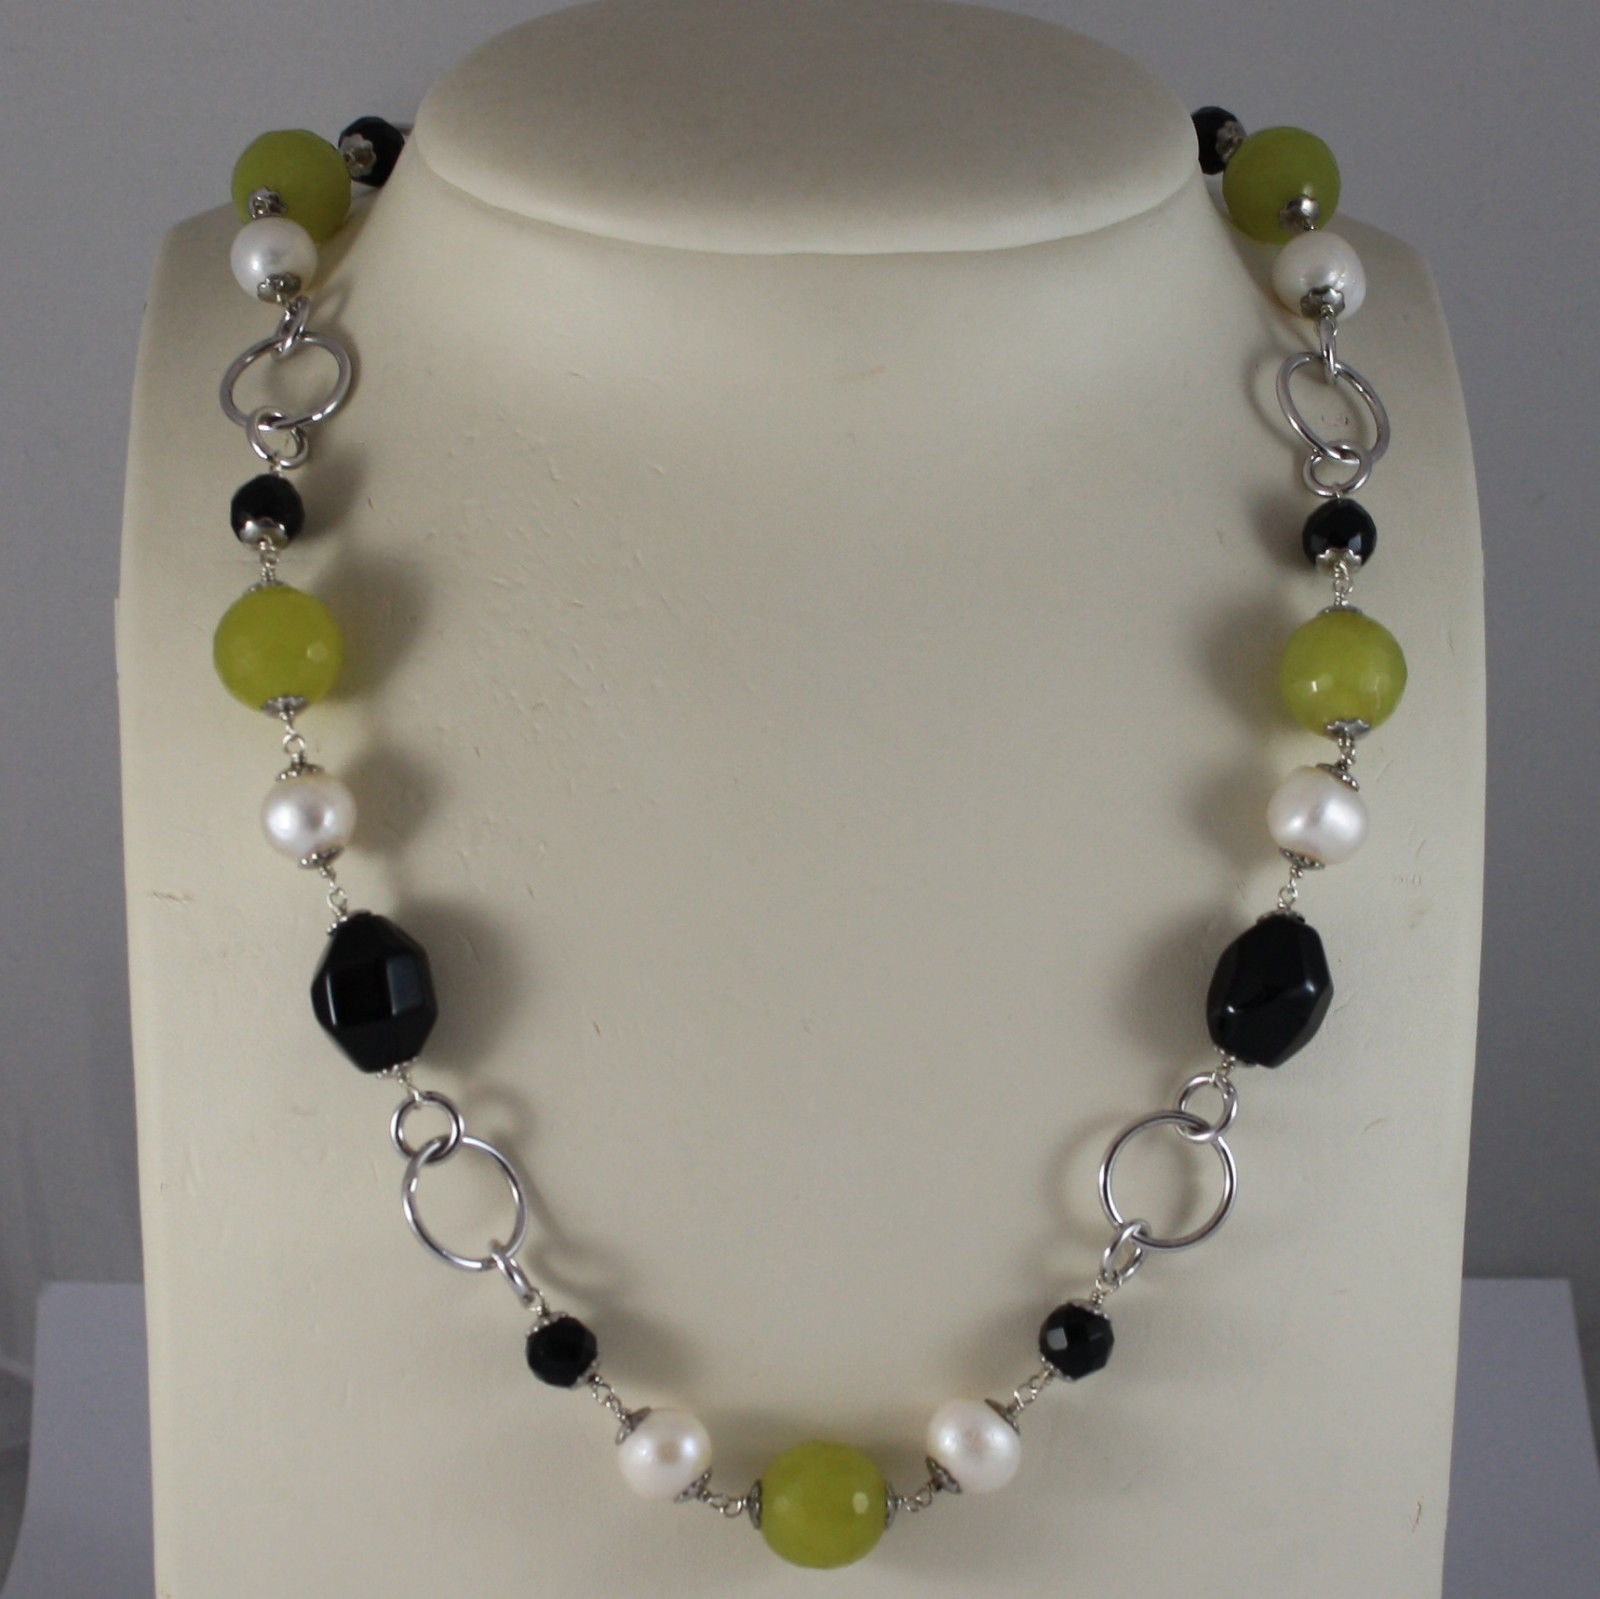 .925 SILVER RHODIUM NECKLACE WITH BLACK ONYX, WHITE PEARLS AND GREEN JASPER